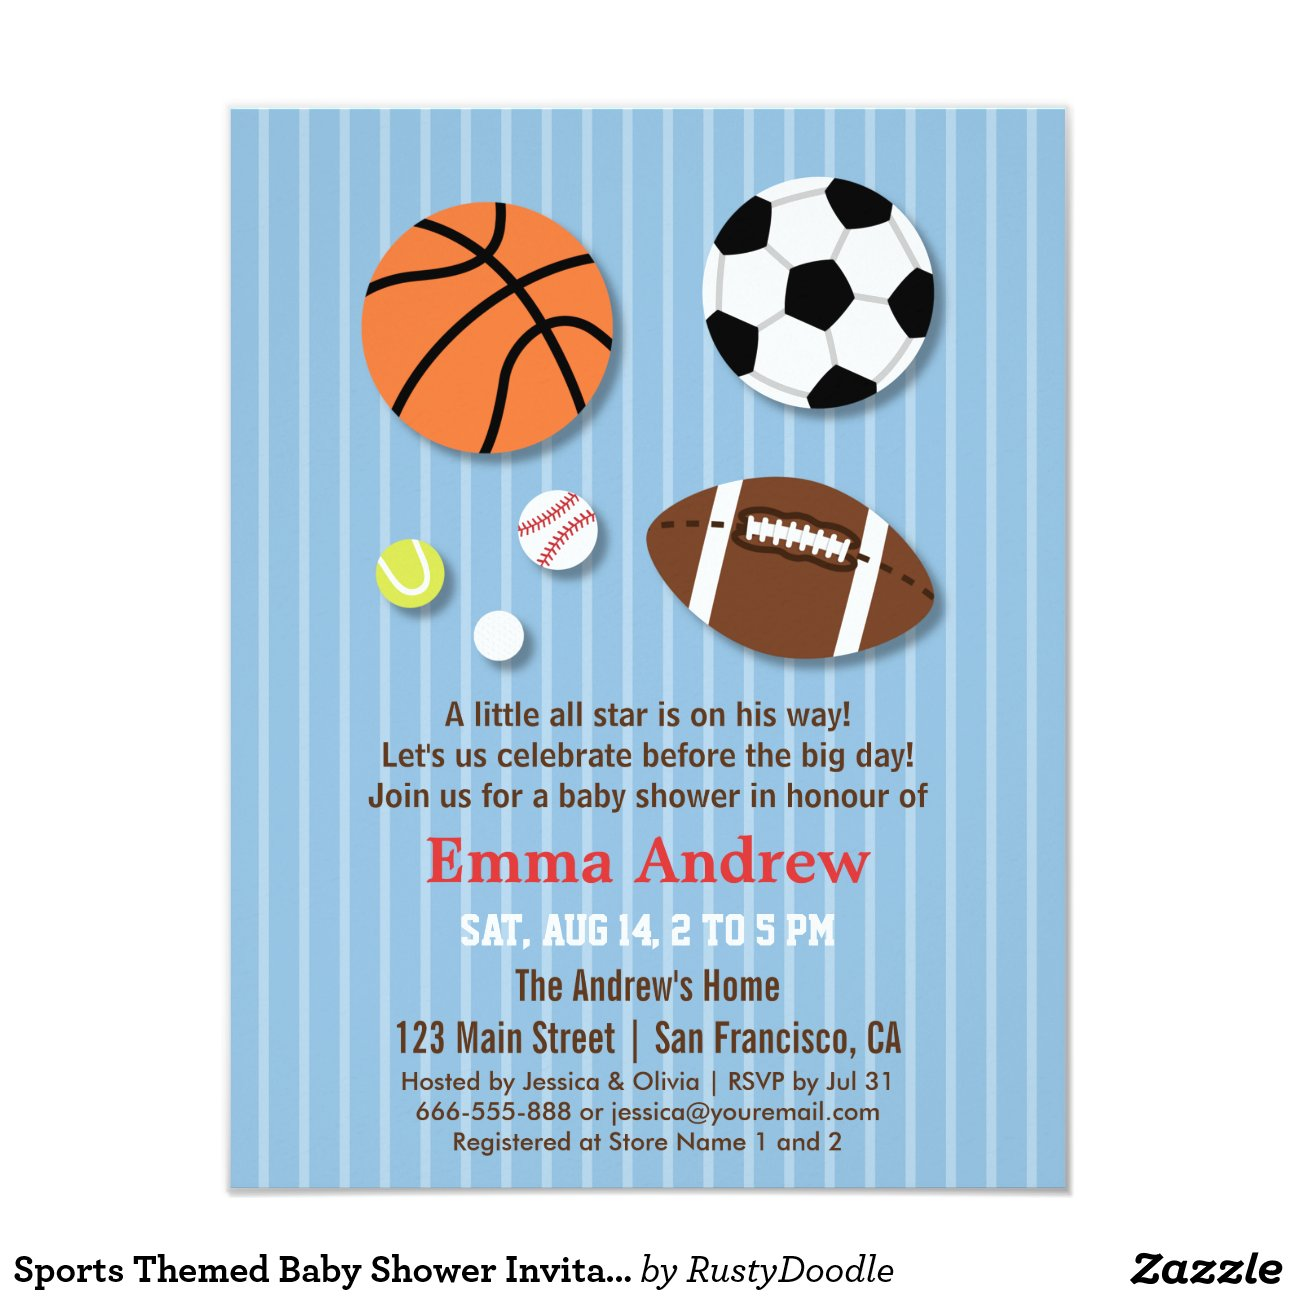 Sport Themed Invitations is beautiful invitations layout